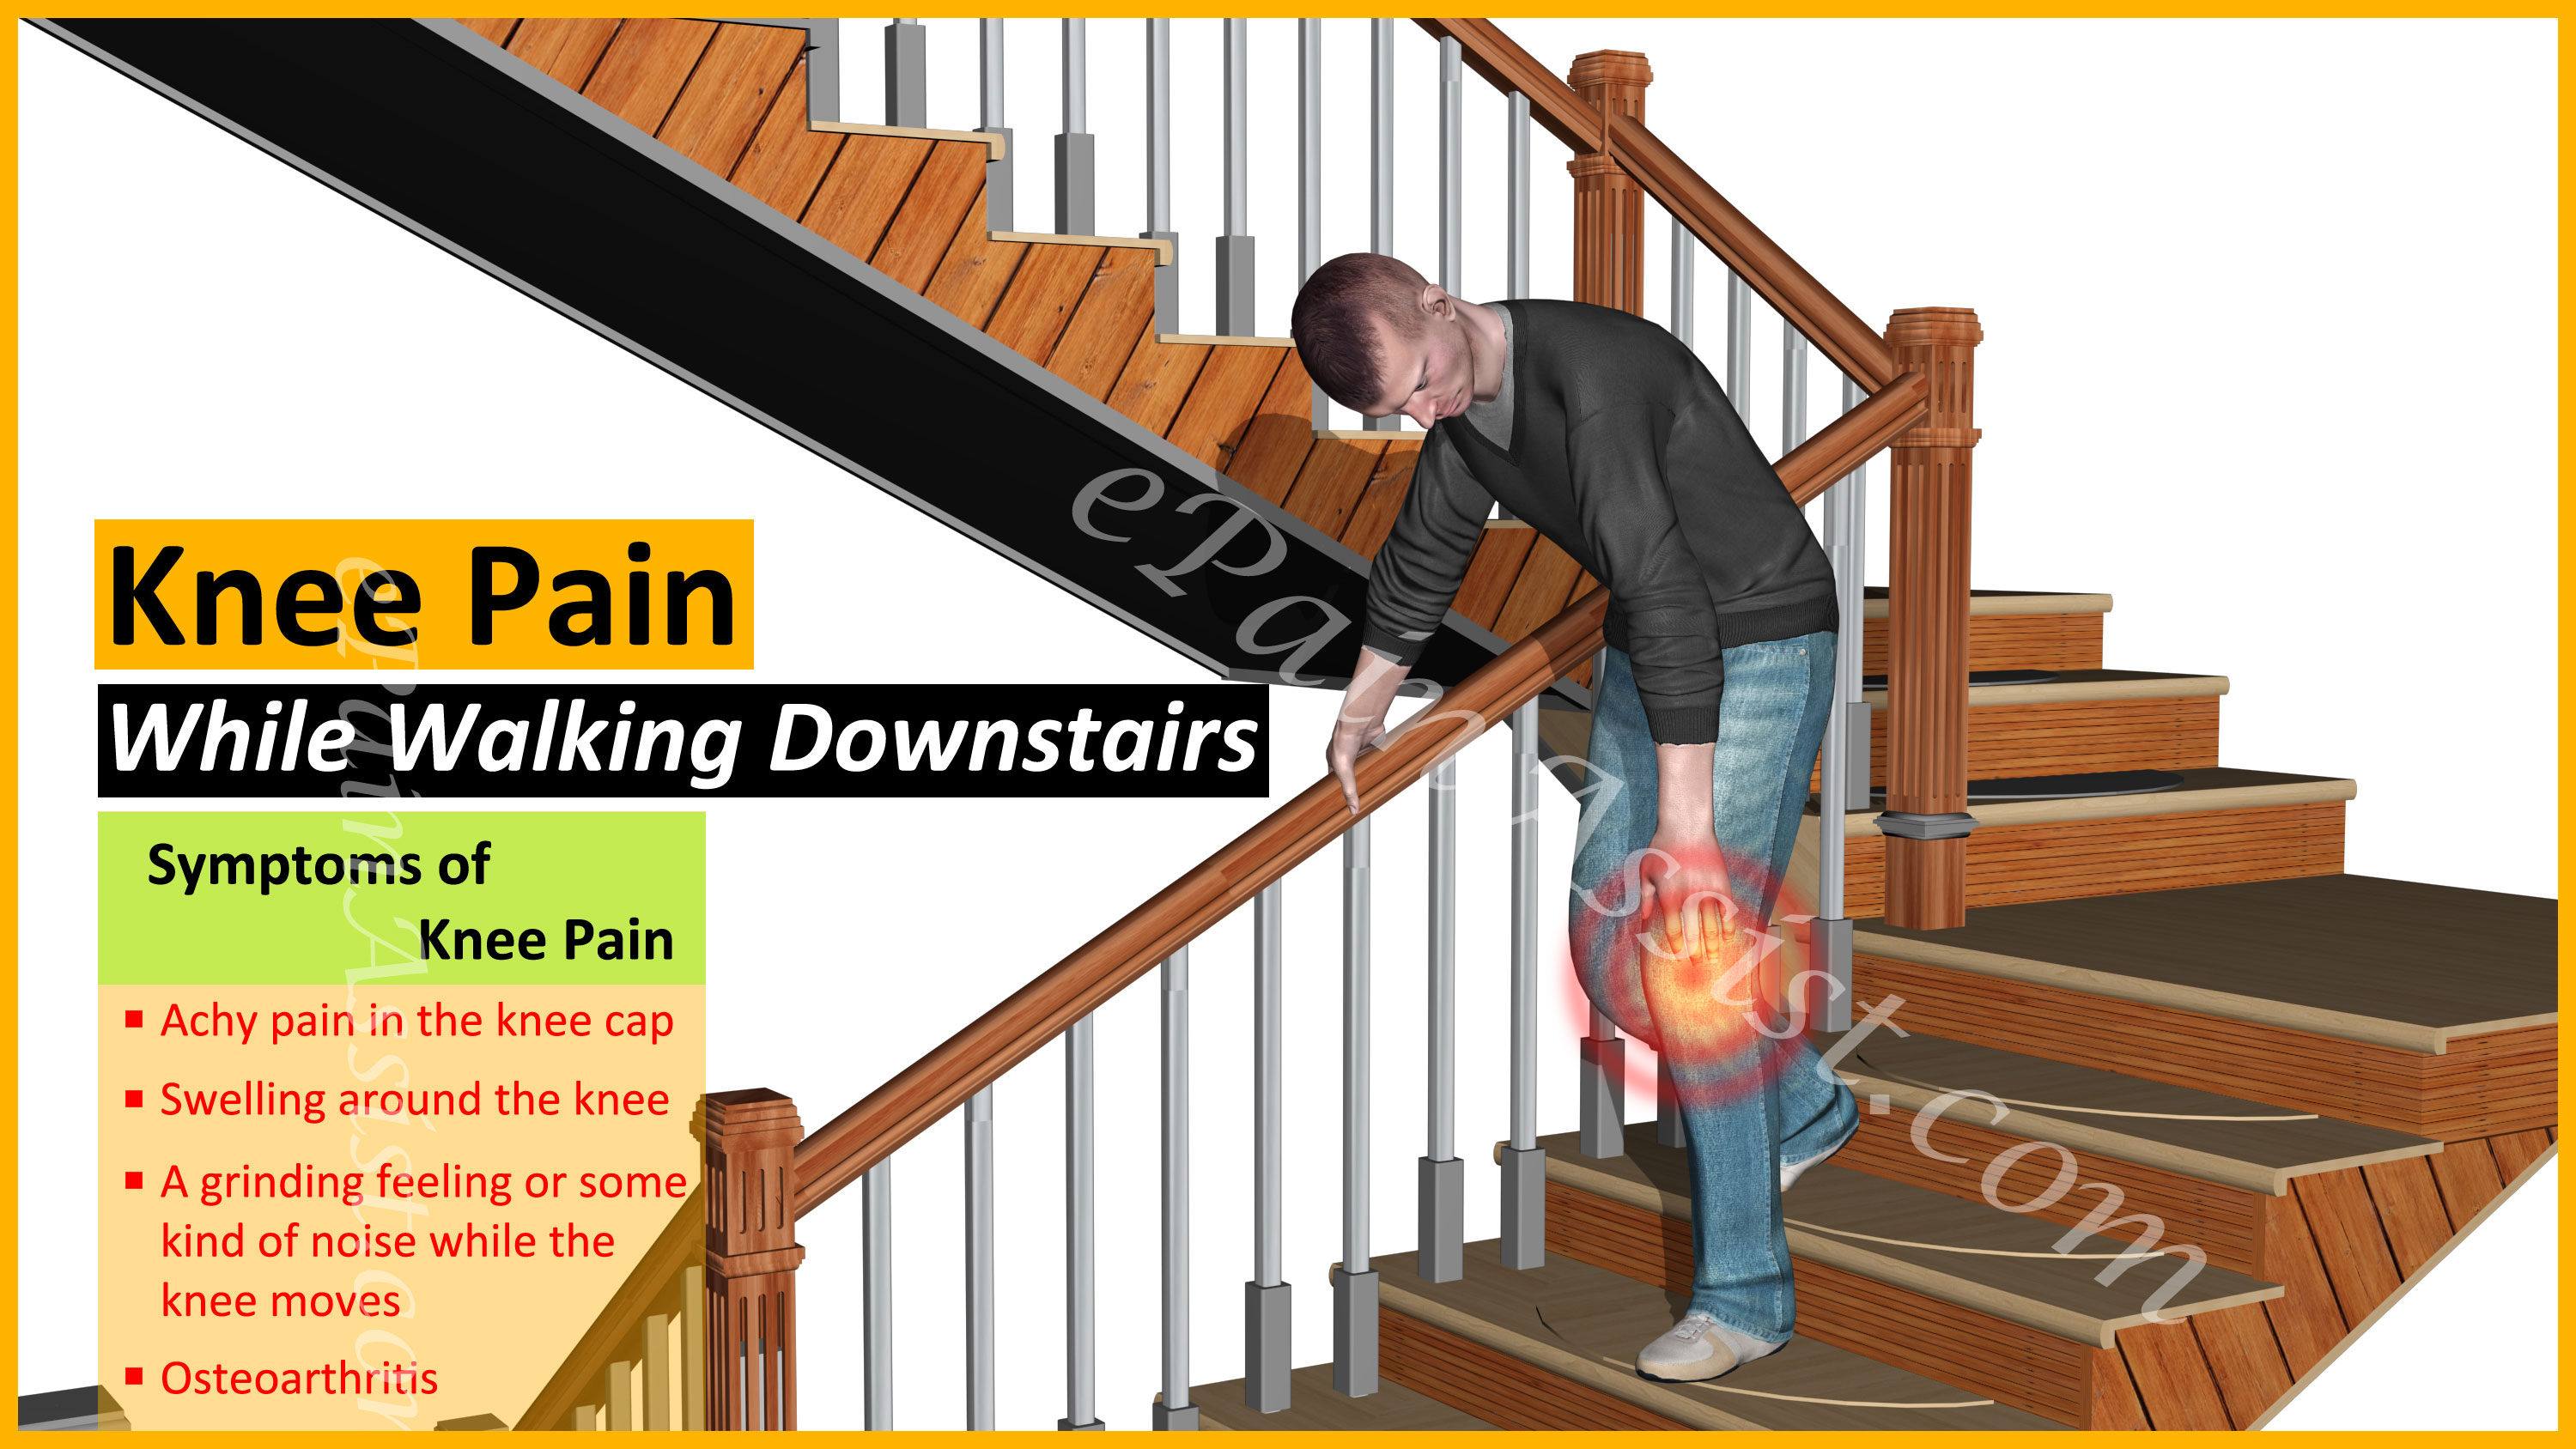 Knee Pain While Walking Downstairs